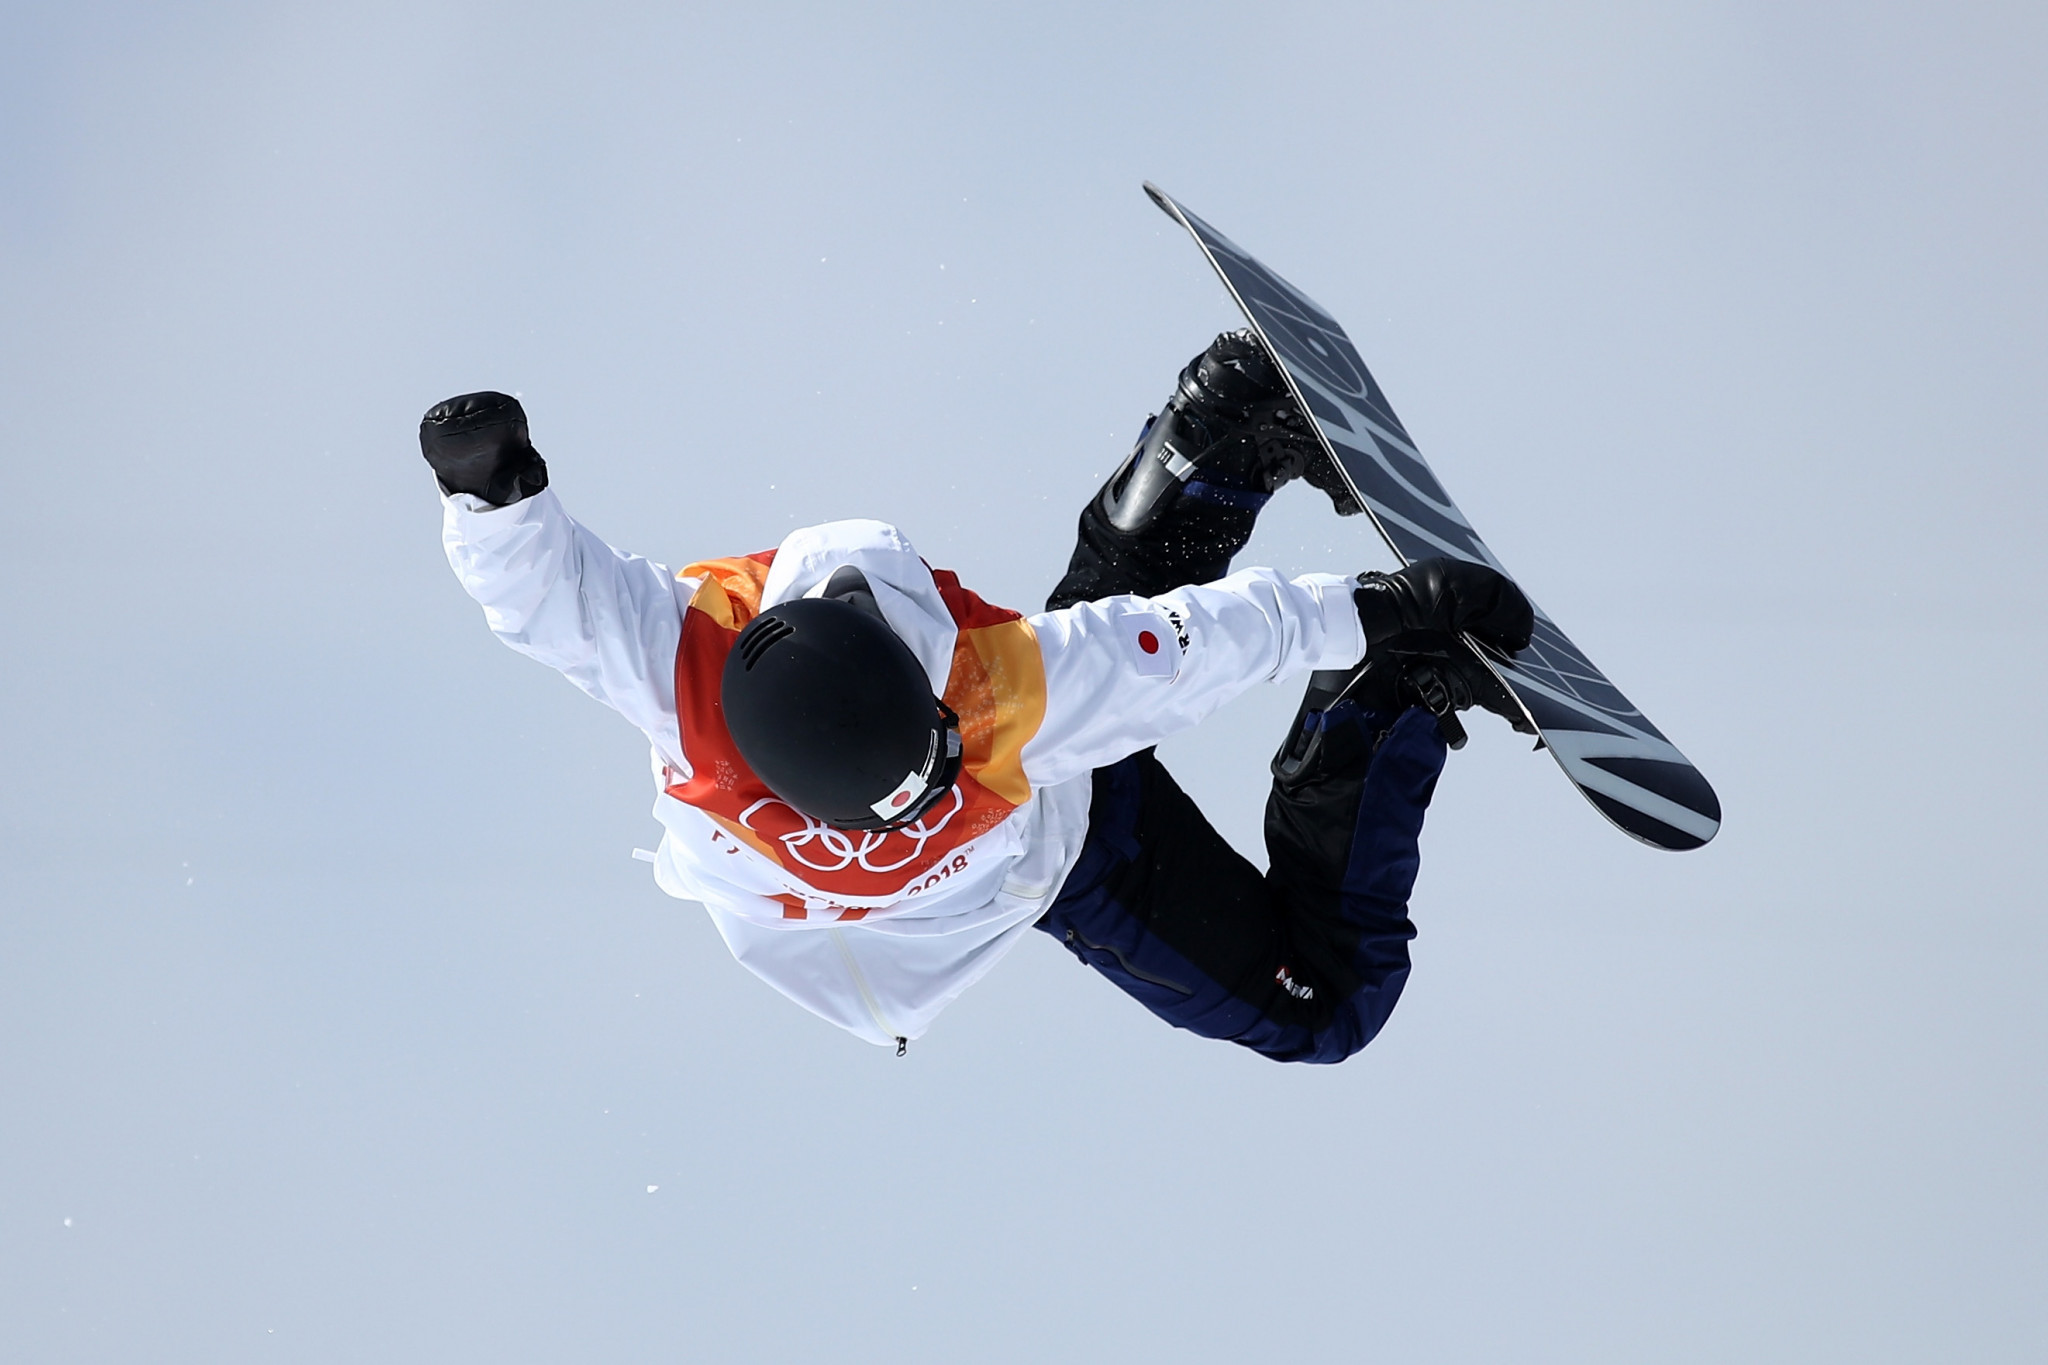 Olympic snowboarding medallist Hiraoka receives suspended prison sentence for drink driving charge